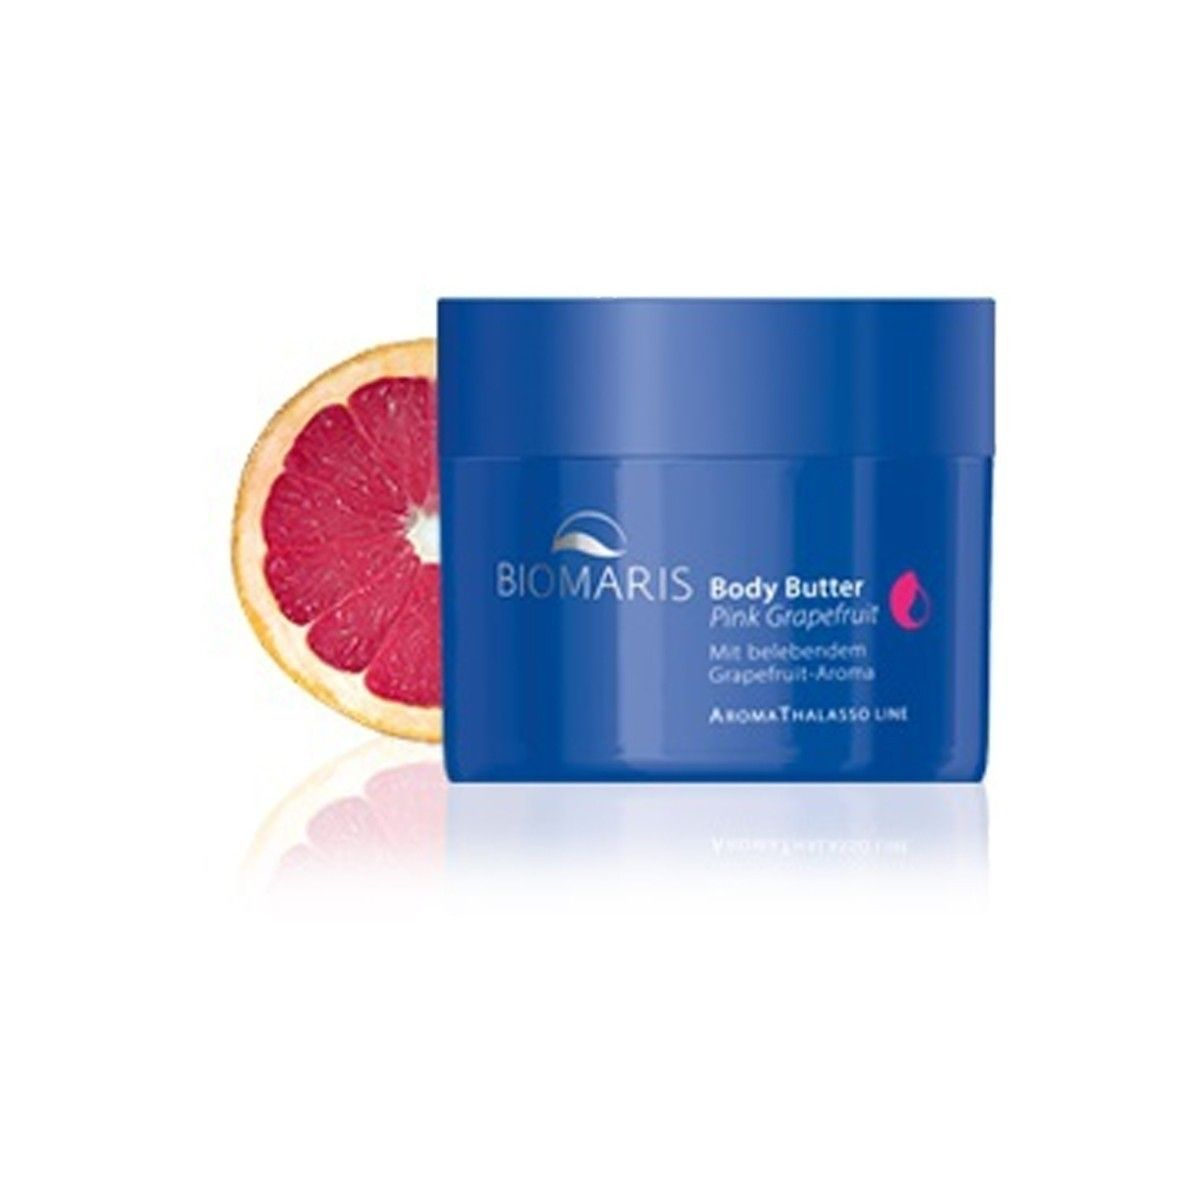 Afbeelding van Biomaris Body Butter Pink Grapefruit Aroma Thalasso Line Beauty